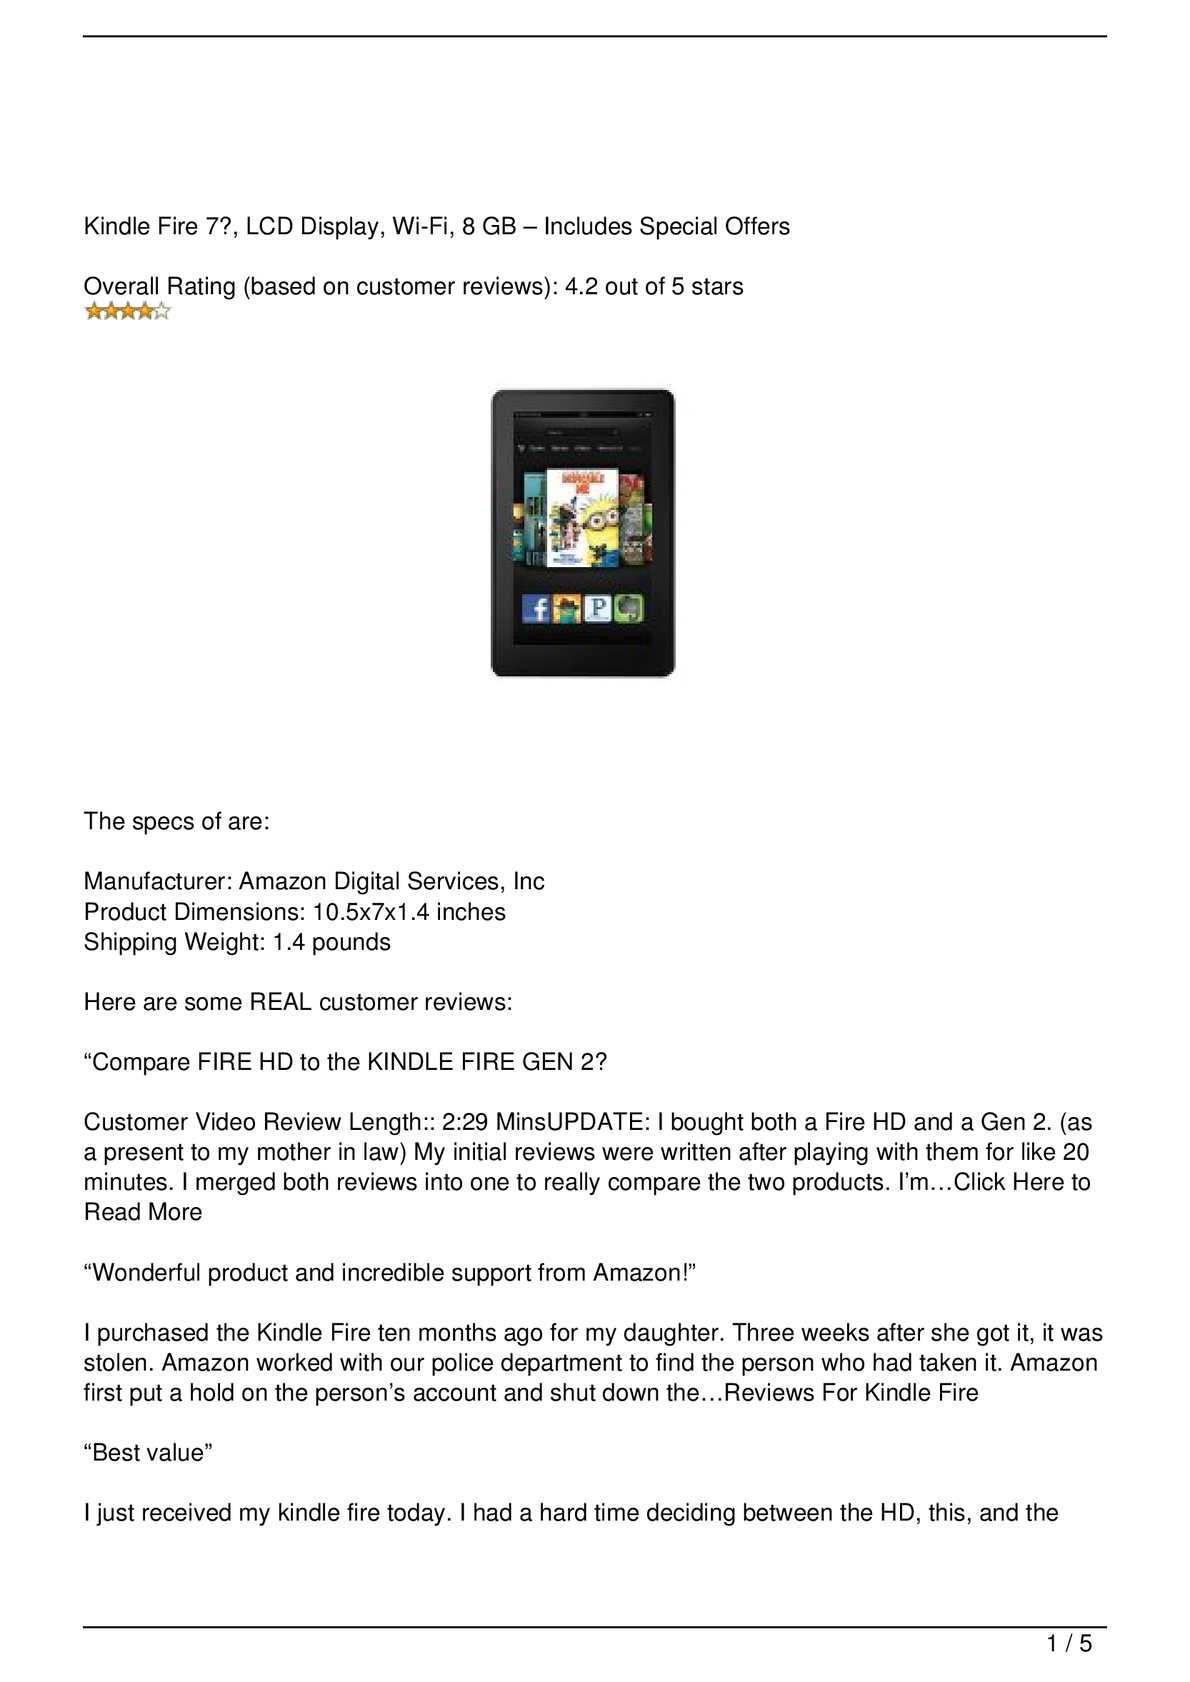 Calaméo - Reviews For Kindle Fire Home